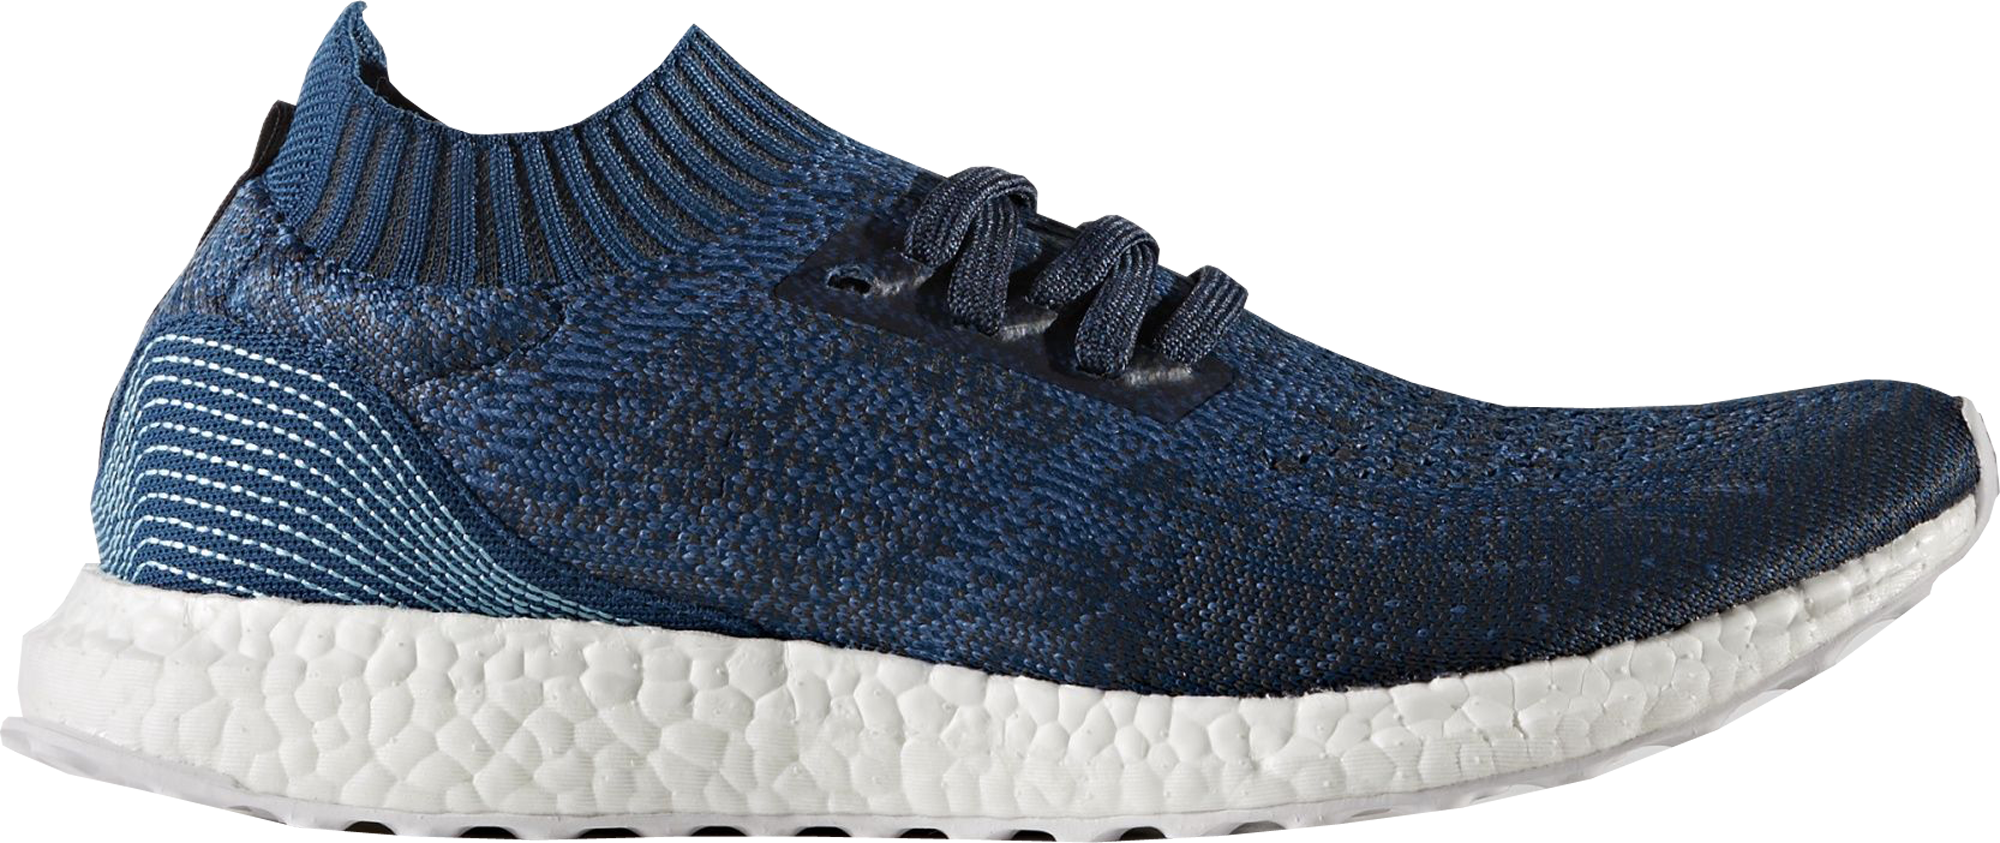 adidas Ultra Boost Uncaged Parley Legend Blue